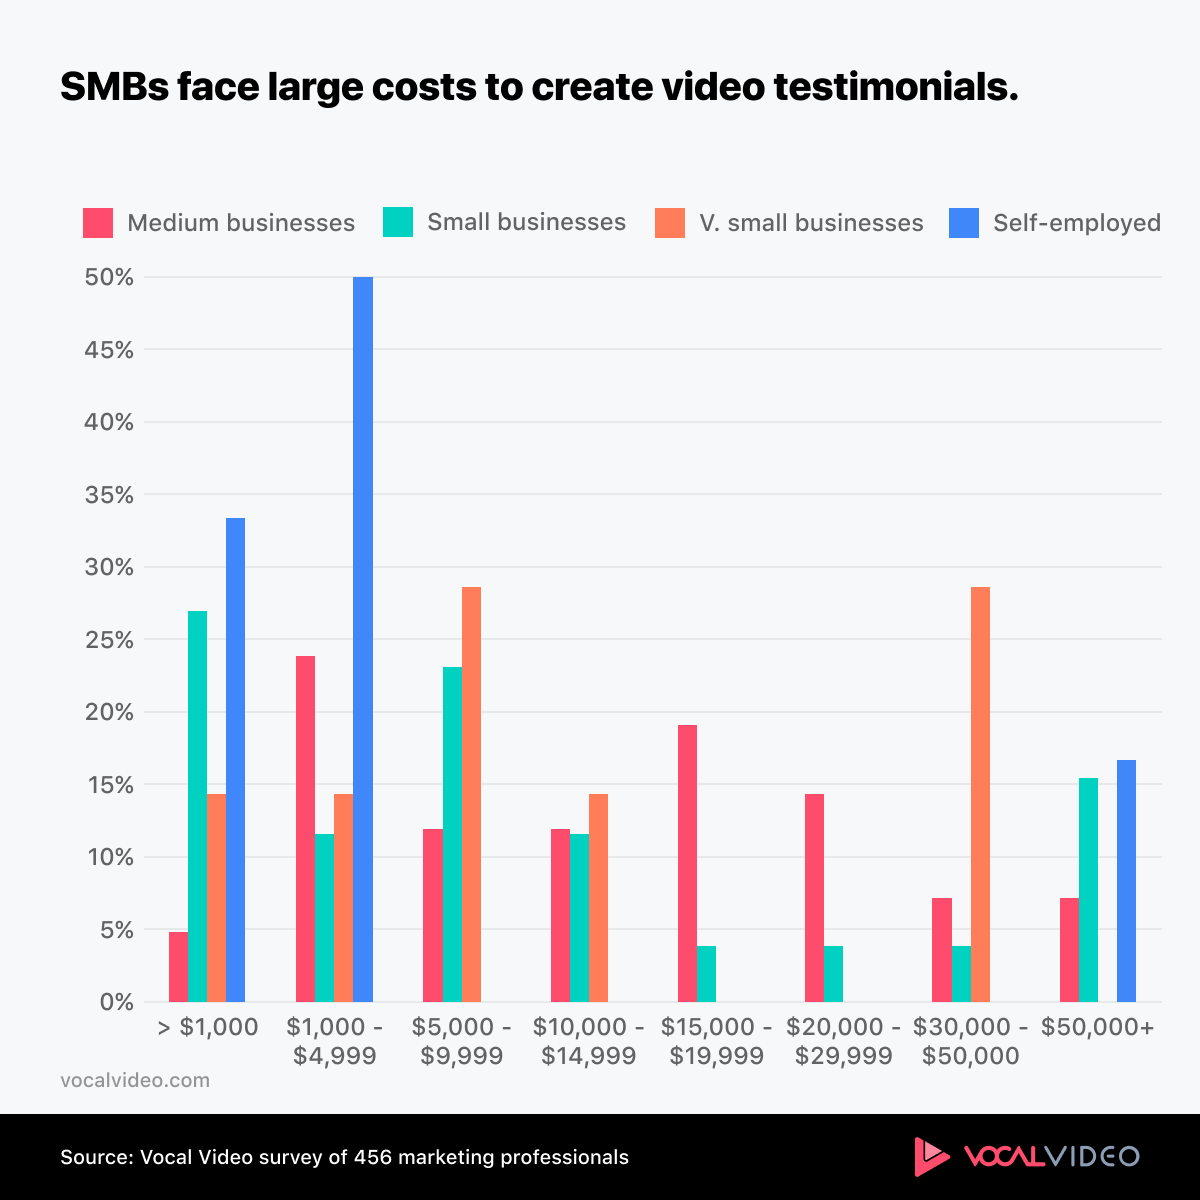 Figure showing that SMBs face high costs when creating testimonial videos.